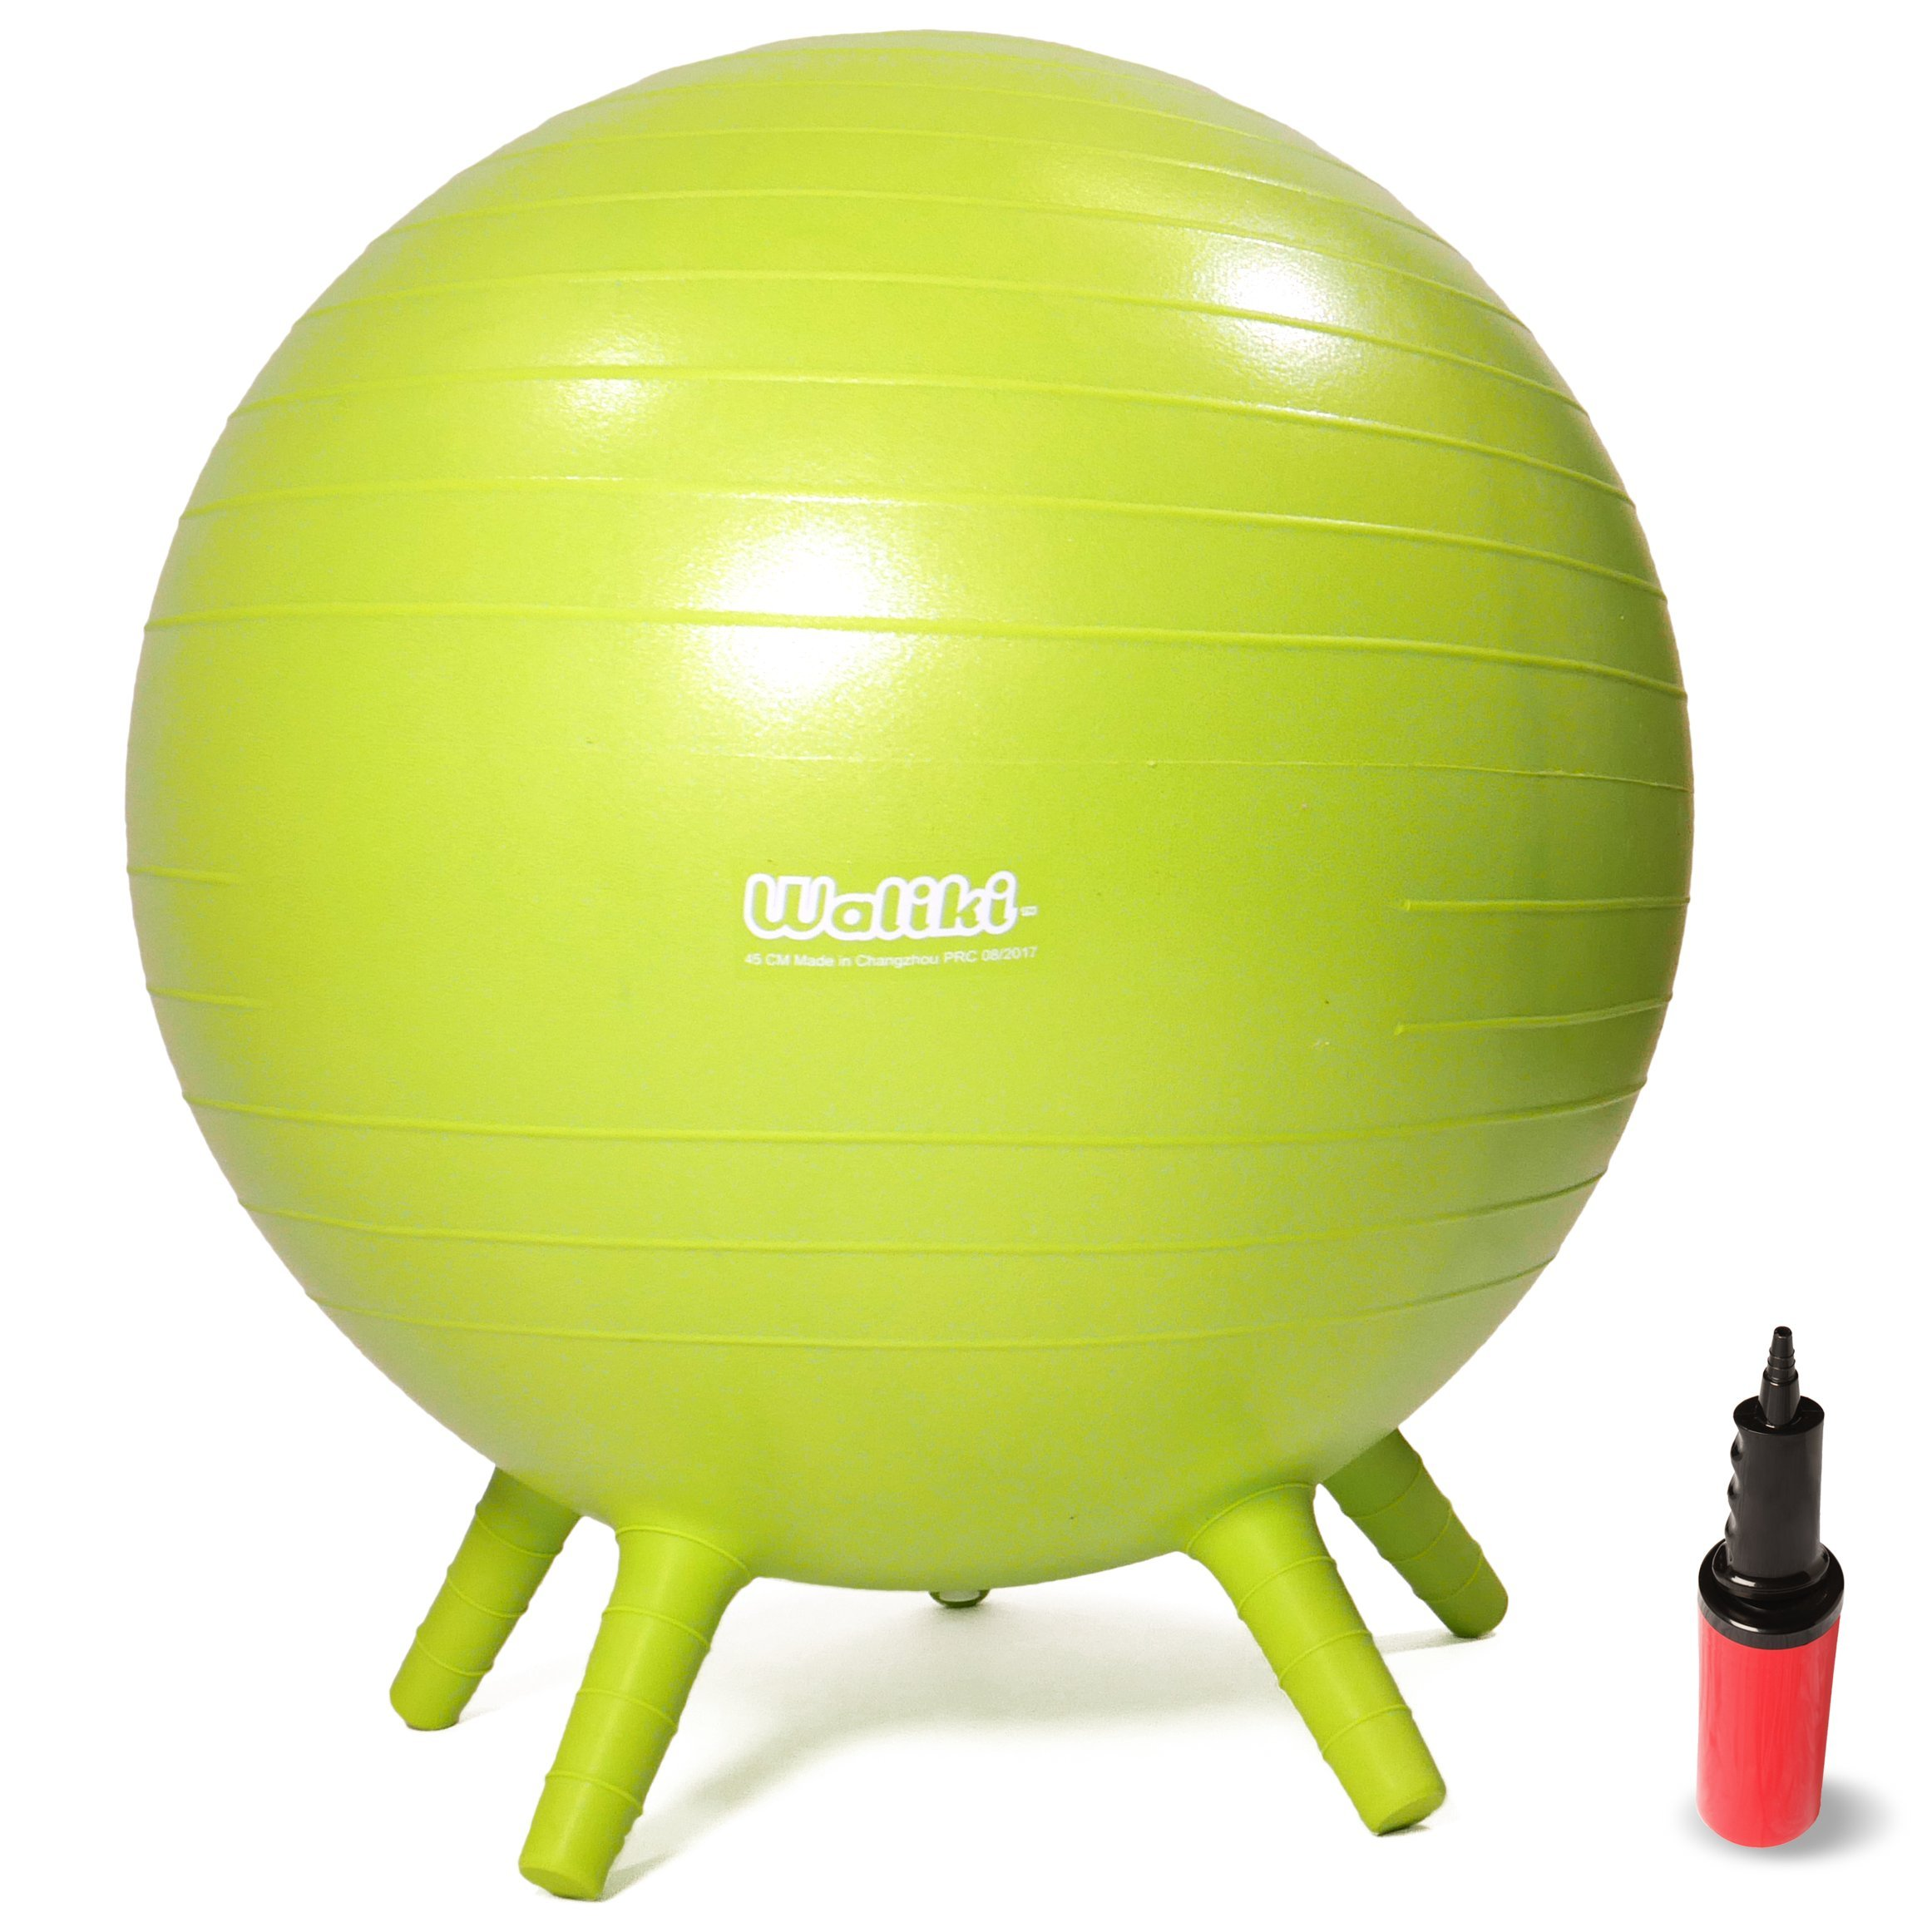 WALIKI Adult Size Chair Ball with Stability Legs | Balance Ball Chair School & Office | 30''/75CM Green by WALIKI